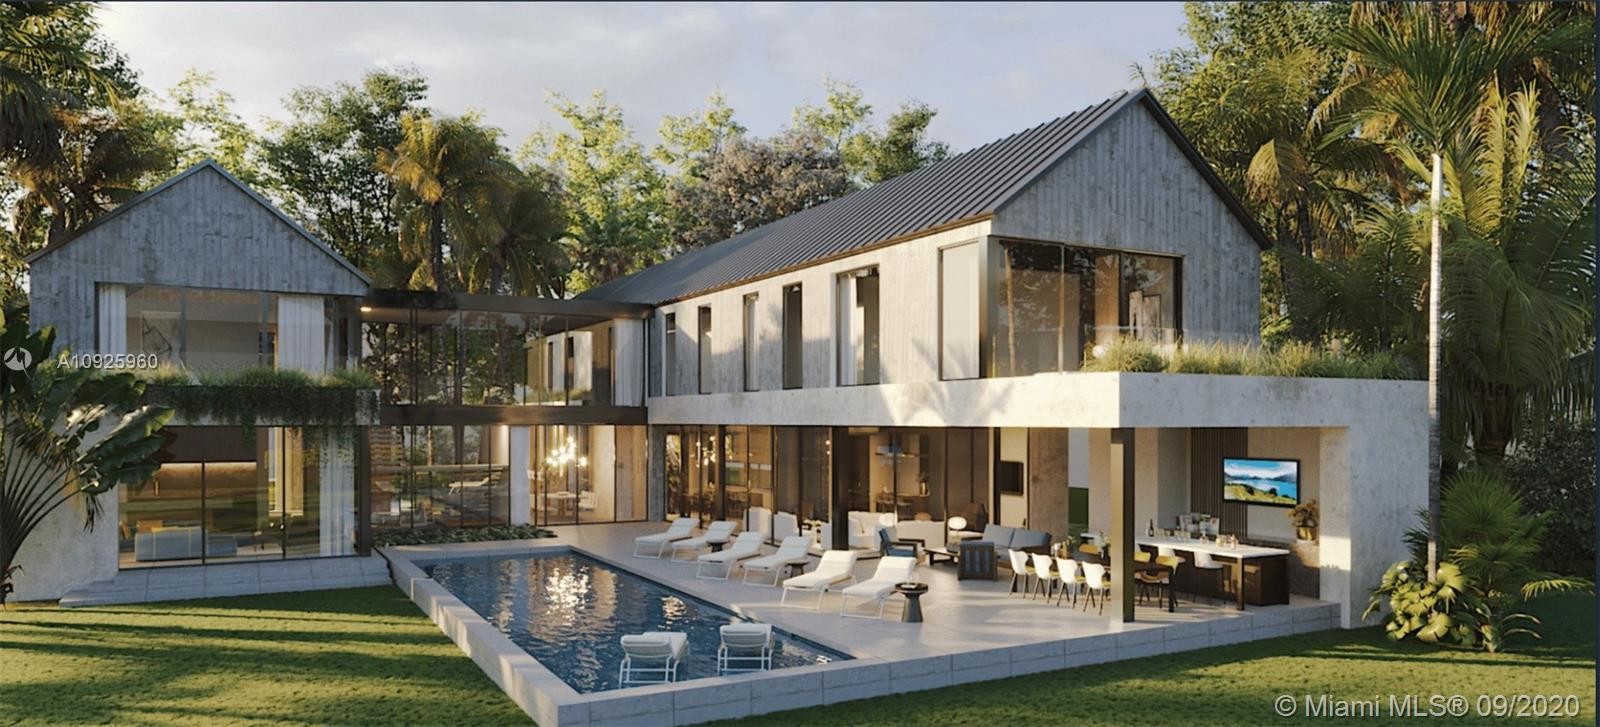 """Extraordinary Modern Farmhouse """"Built for the Ages"""" by Mocca Construction. Commanding a private wooded acre in posh, close-in Ponce-Davis, the home rises amidst majestic stands of live oaks. Organic features include Florida Keystone & natural woods. Its H-footprint & floor-to-ceiling windows/doors optimize landscape & reflecting pool views. Understated interiors flow seamlessly into vibrant outdoor living spaces. Of its elegant 11,762 SF, 9,015 are under air, including lofty common areas, a heart-of-the-home kitchen, en-suite sleeping quarters, guest suite, staff quarters, office, 6 baths & 3 half baths. Exteriors include covered lounge, summer kitchen & luxe lap pool. The grandly scaled Max Strang-designed residence's expected completion date is Spring 2021. Worth the wait!"""